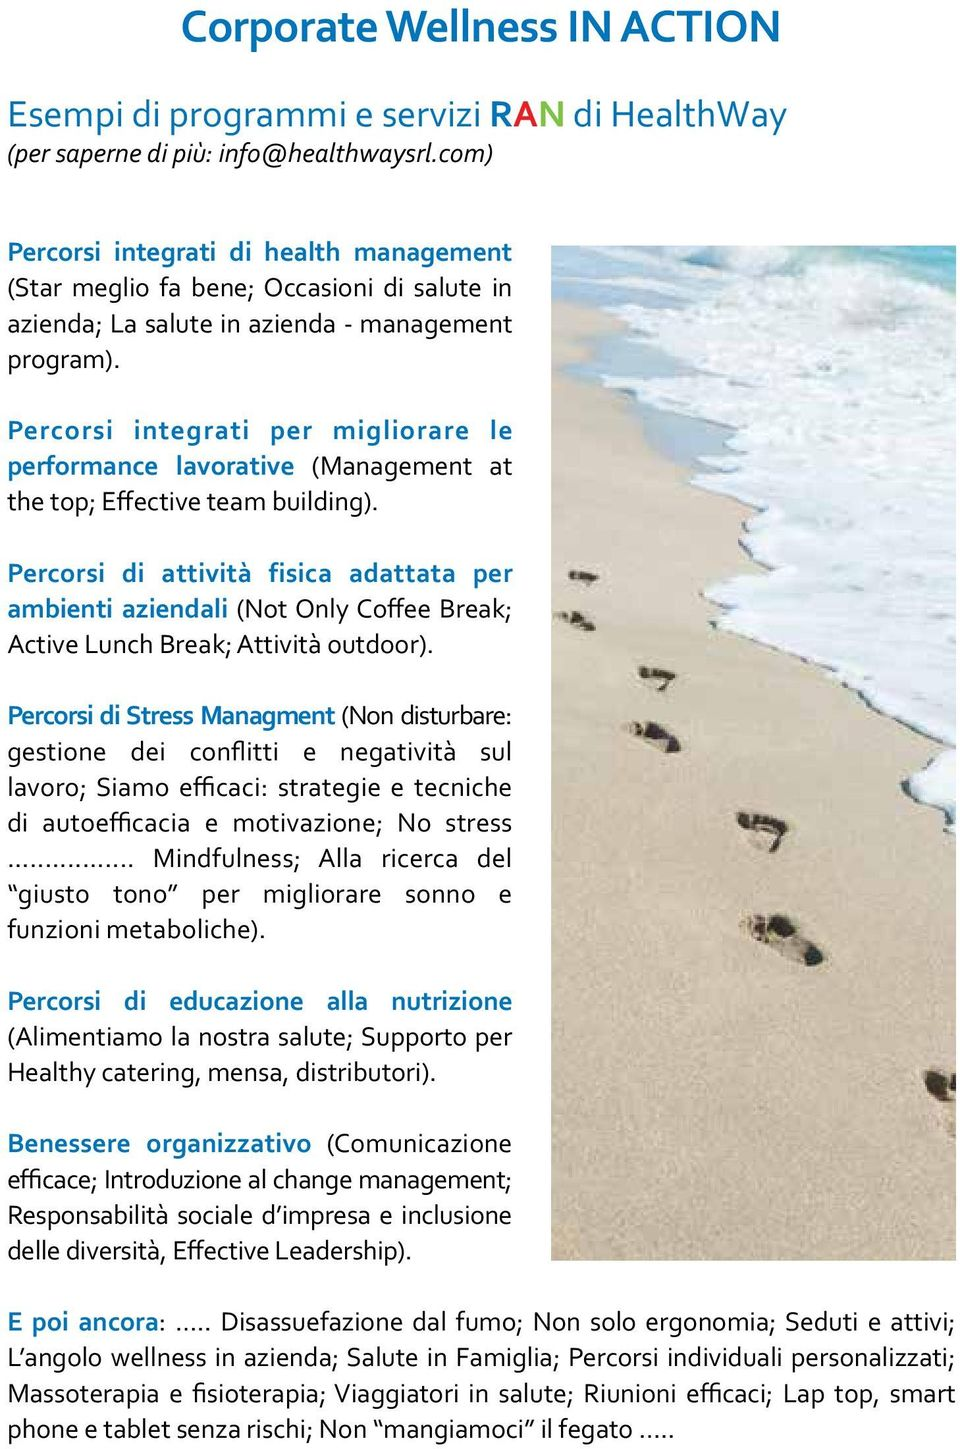 Percorsi integrati per migliorare le performance lavorative (Management at the top; Effective team building).